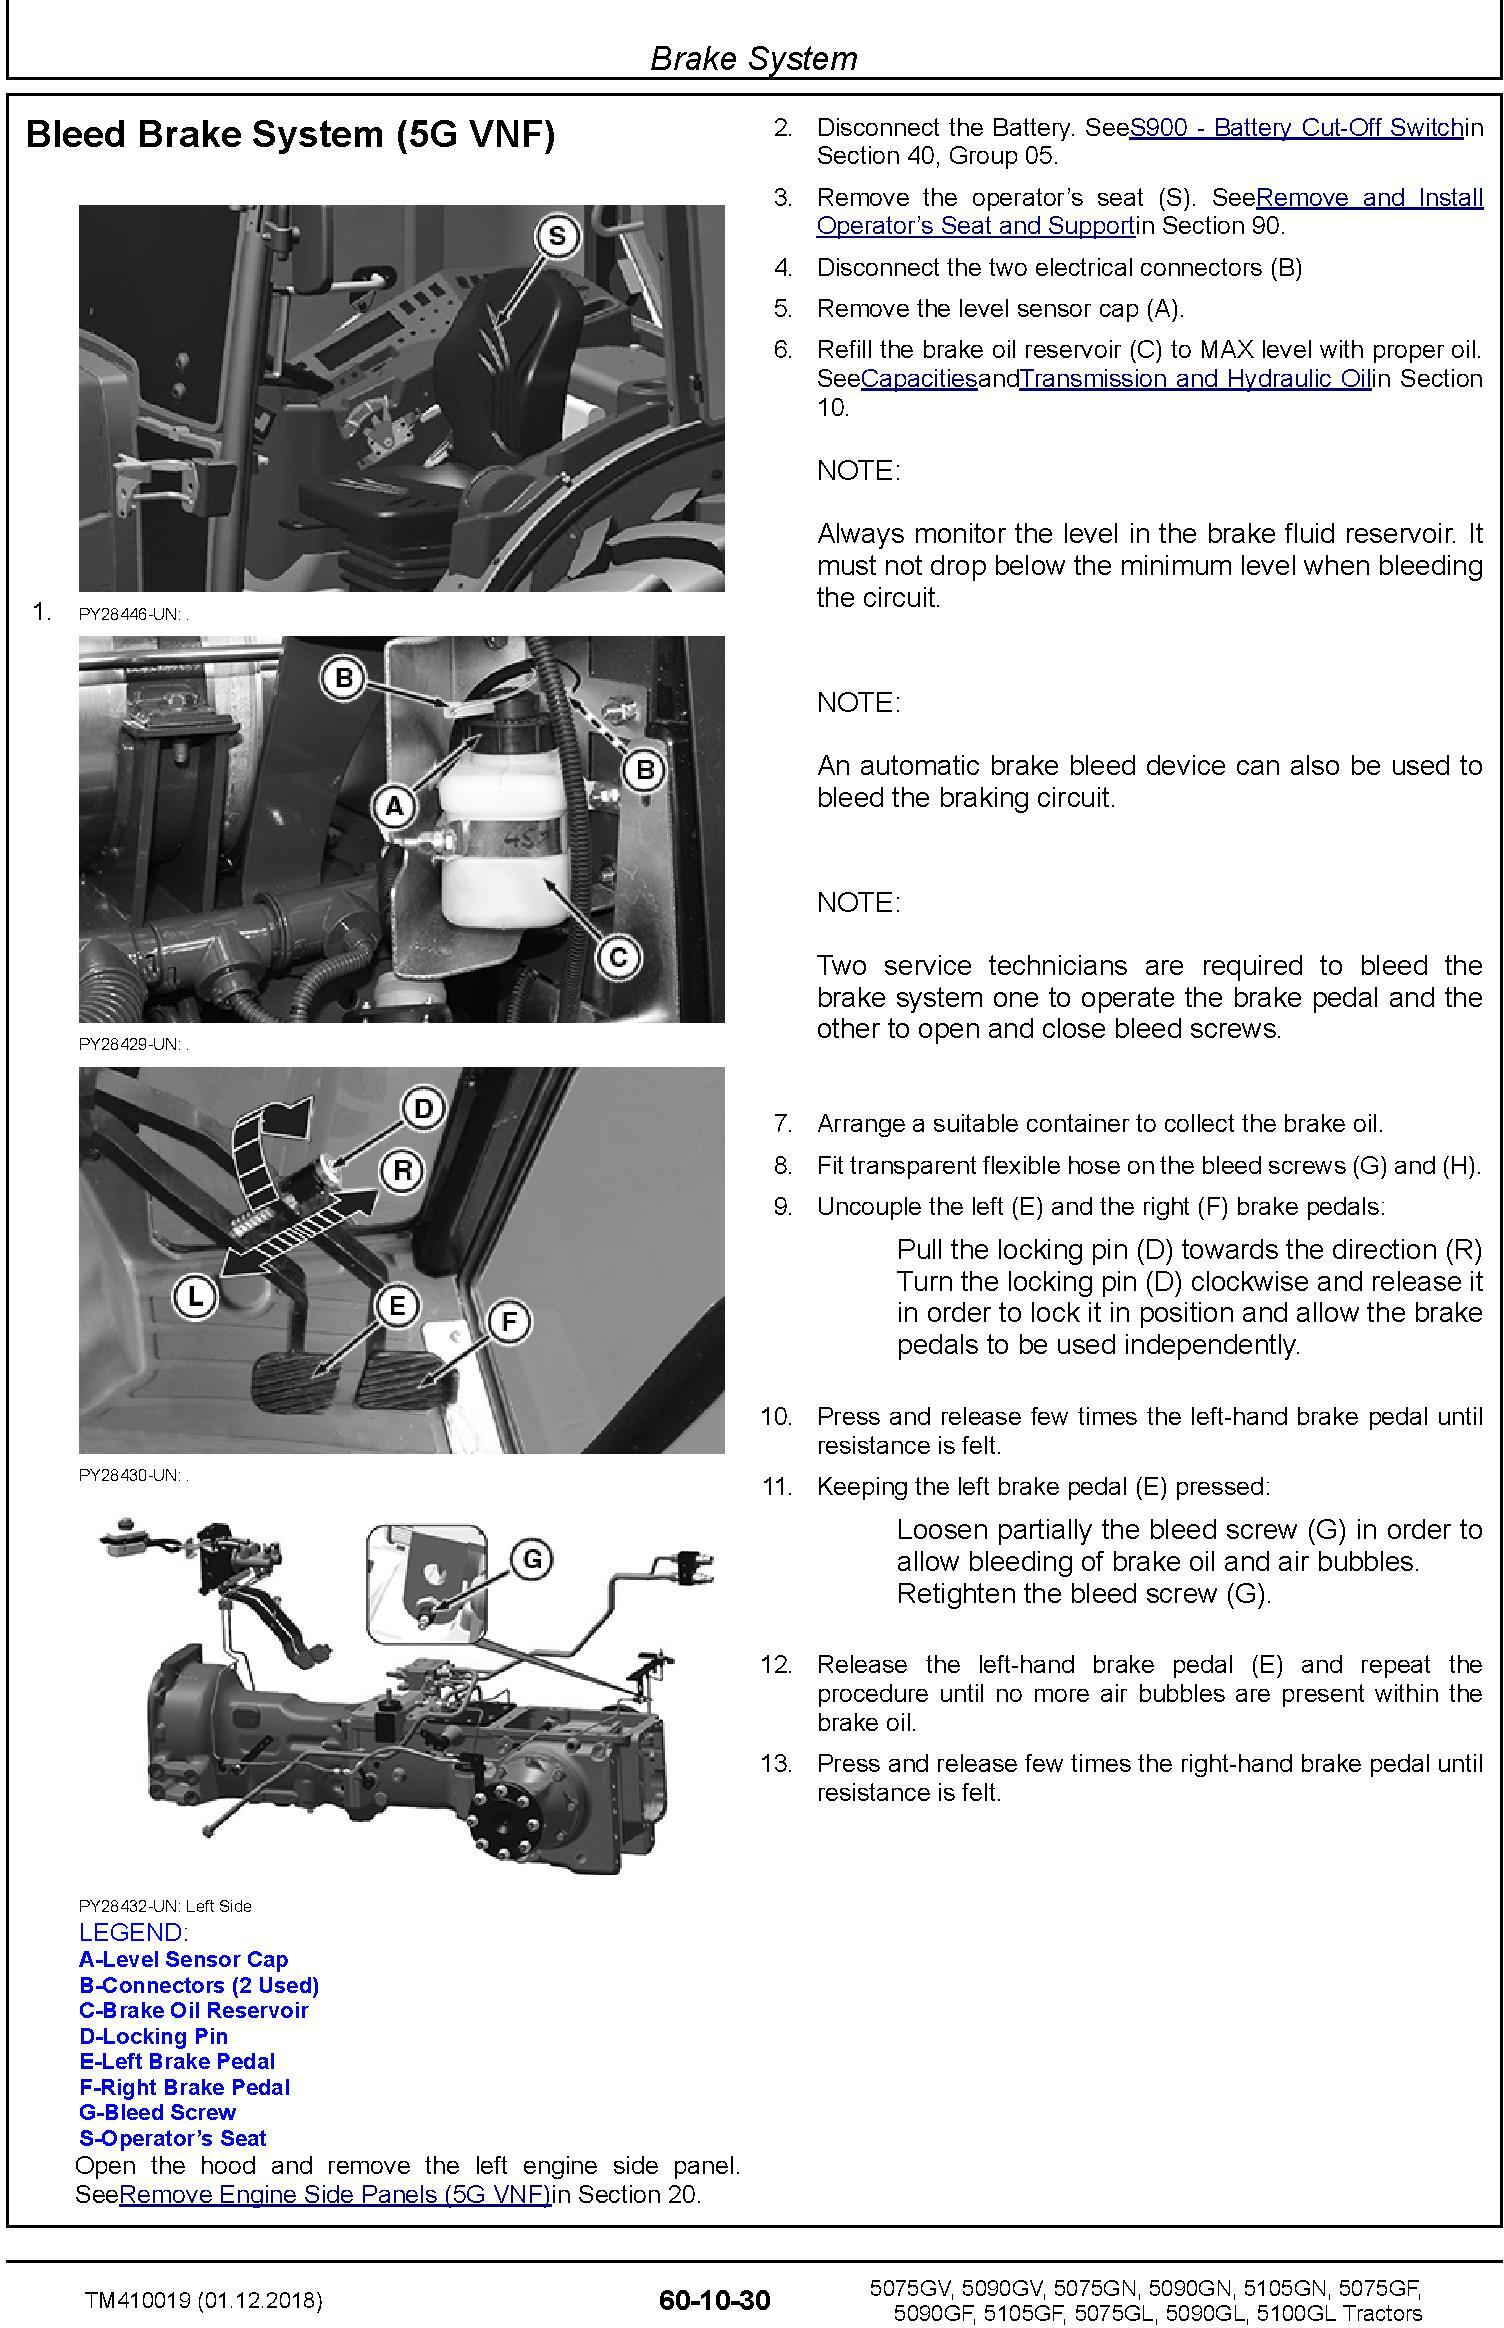 John Deere 5075GF/L/N/V, 5090GF/L/N/V, 5100GL, 5105GF/N Tractors Repair Technical Manual (TM410019) - 2